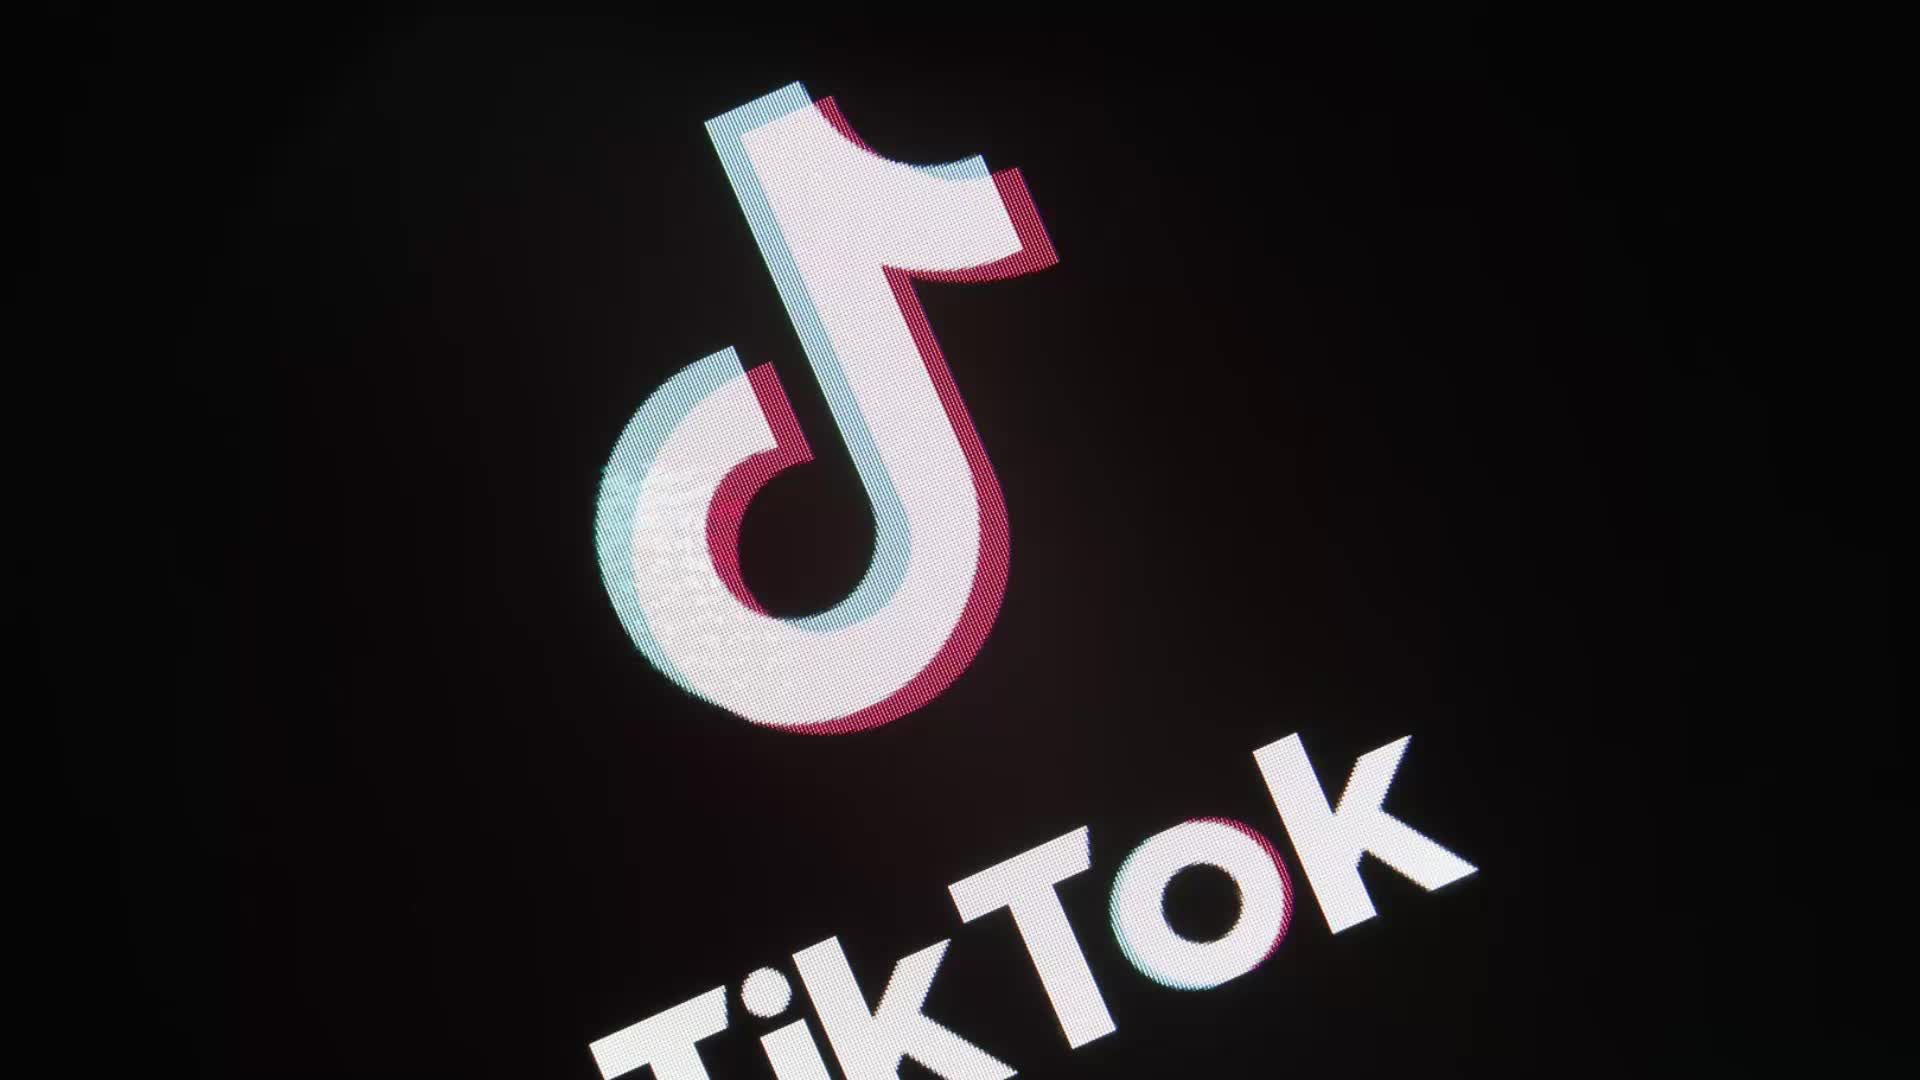 tiktok wallpaper computer